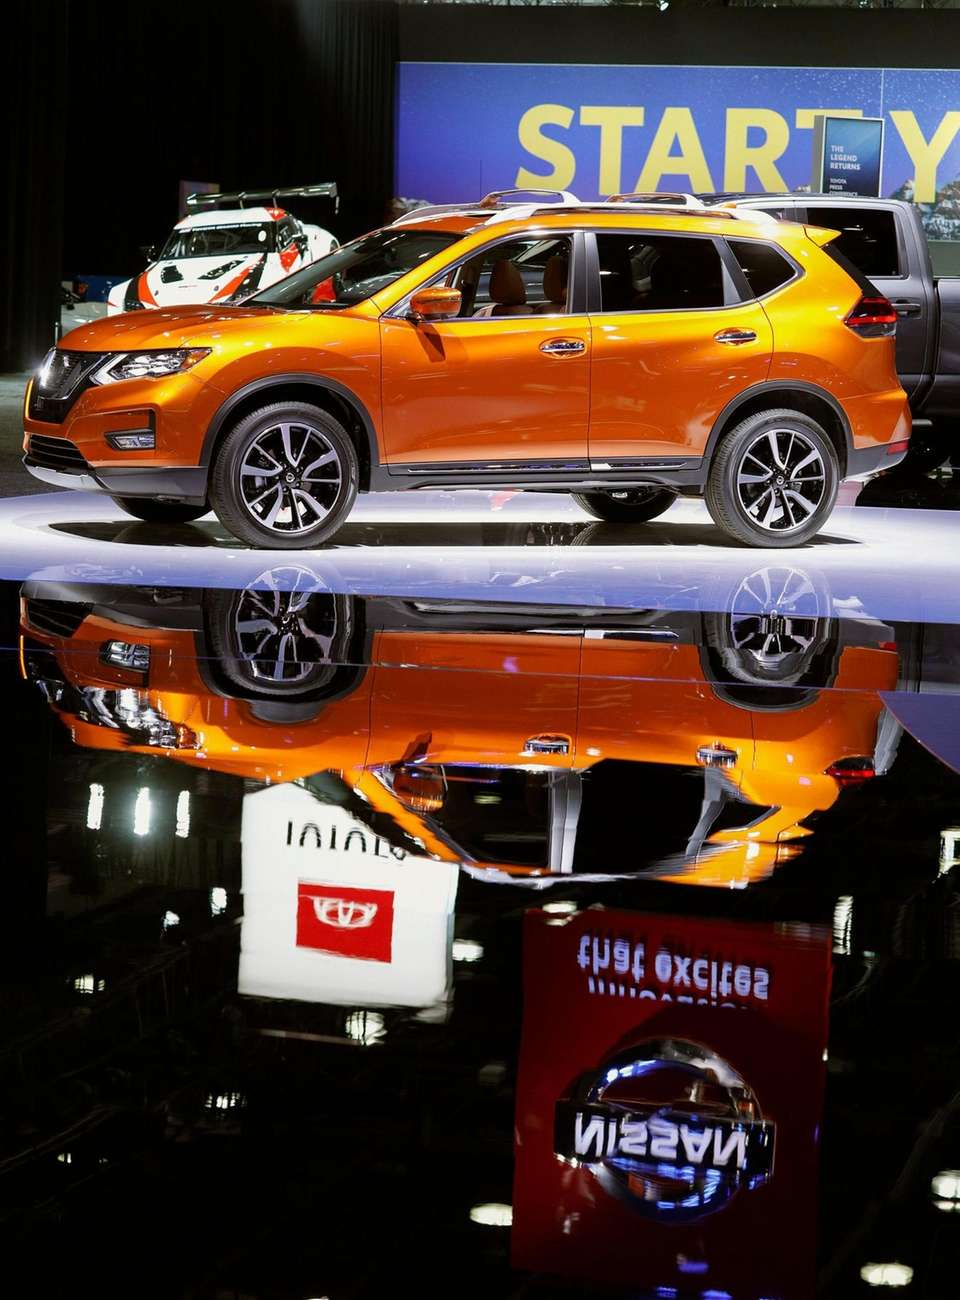 The Nissan exhibit opens for previews at the